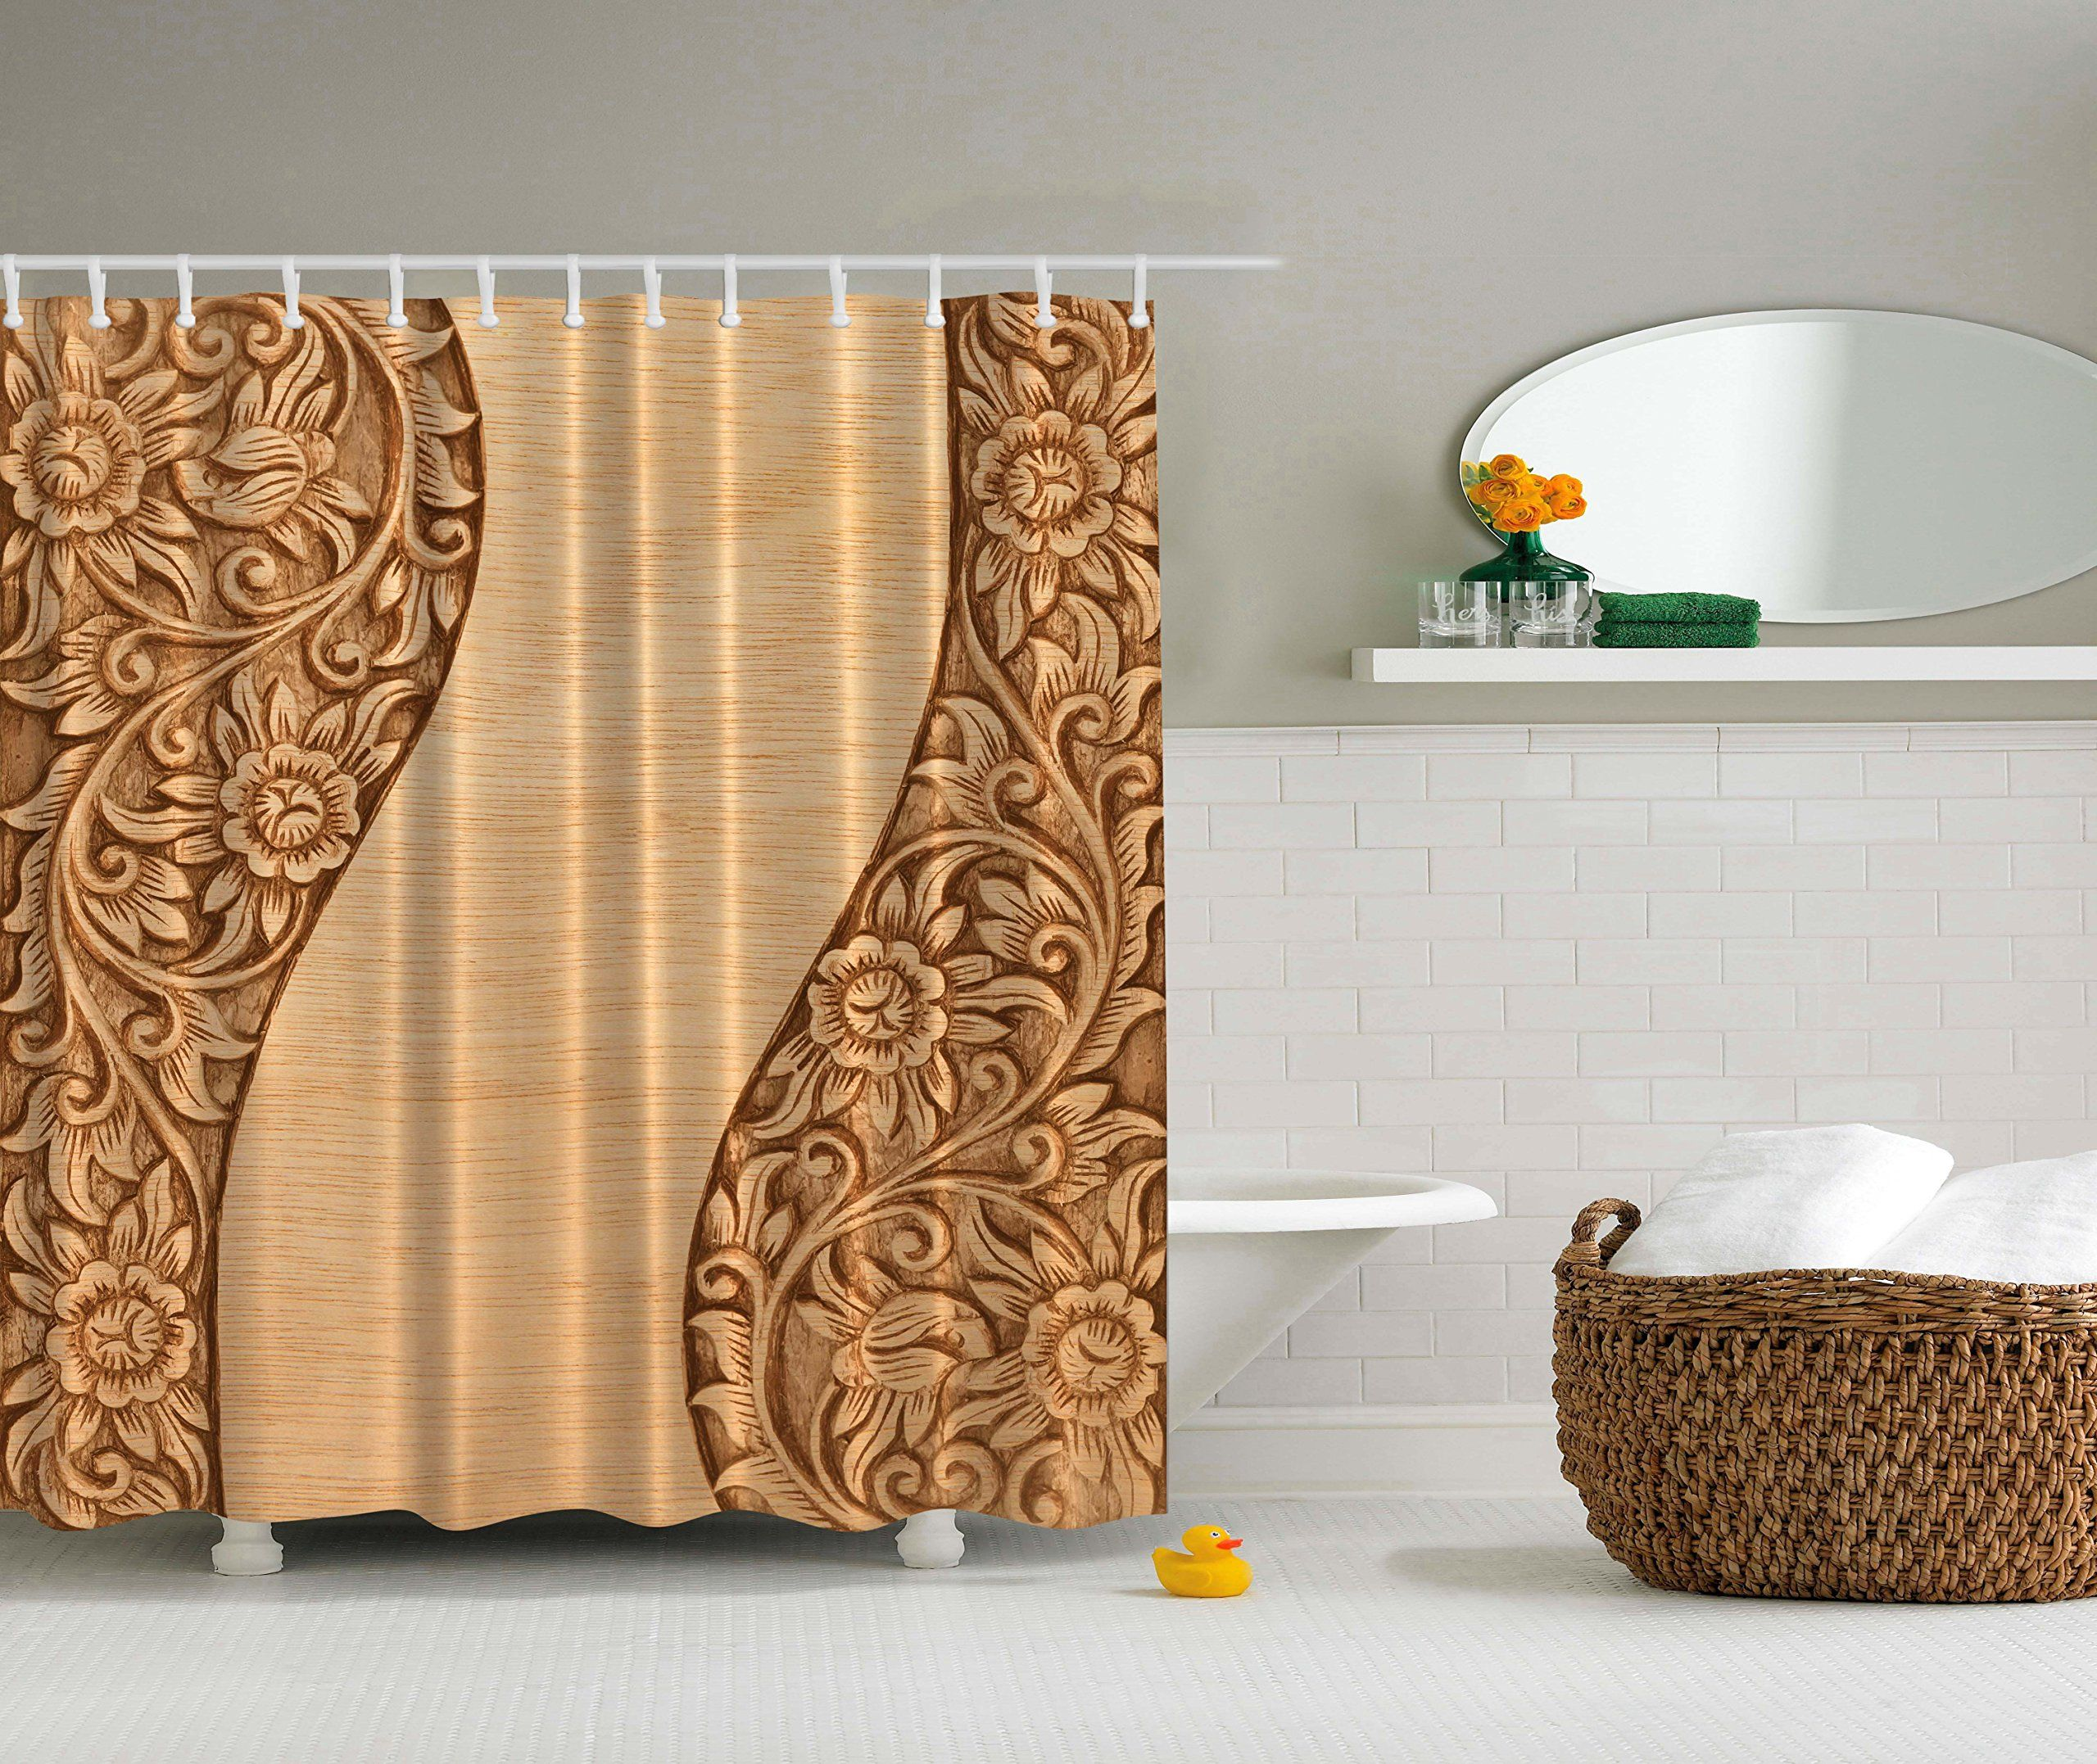 Country Decor Carved Wood Ornamental Flowers Shower Curtain Modern